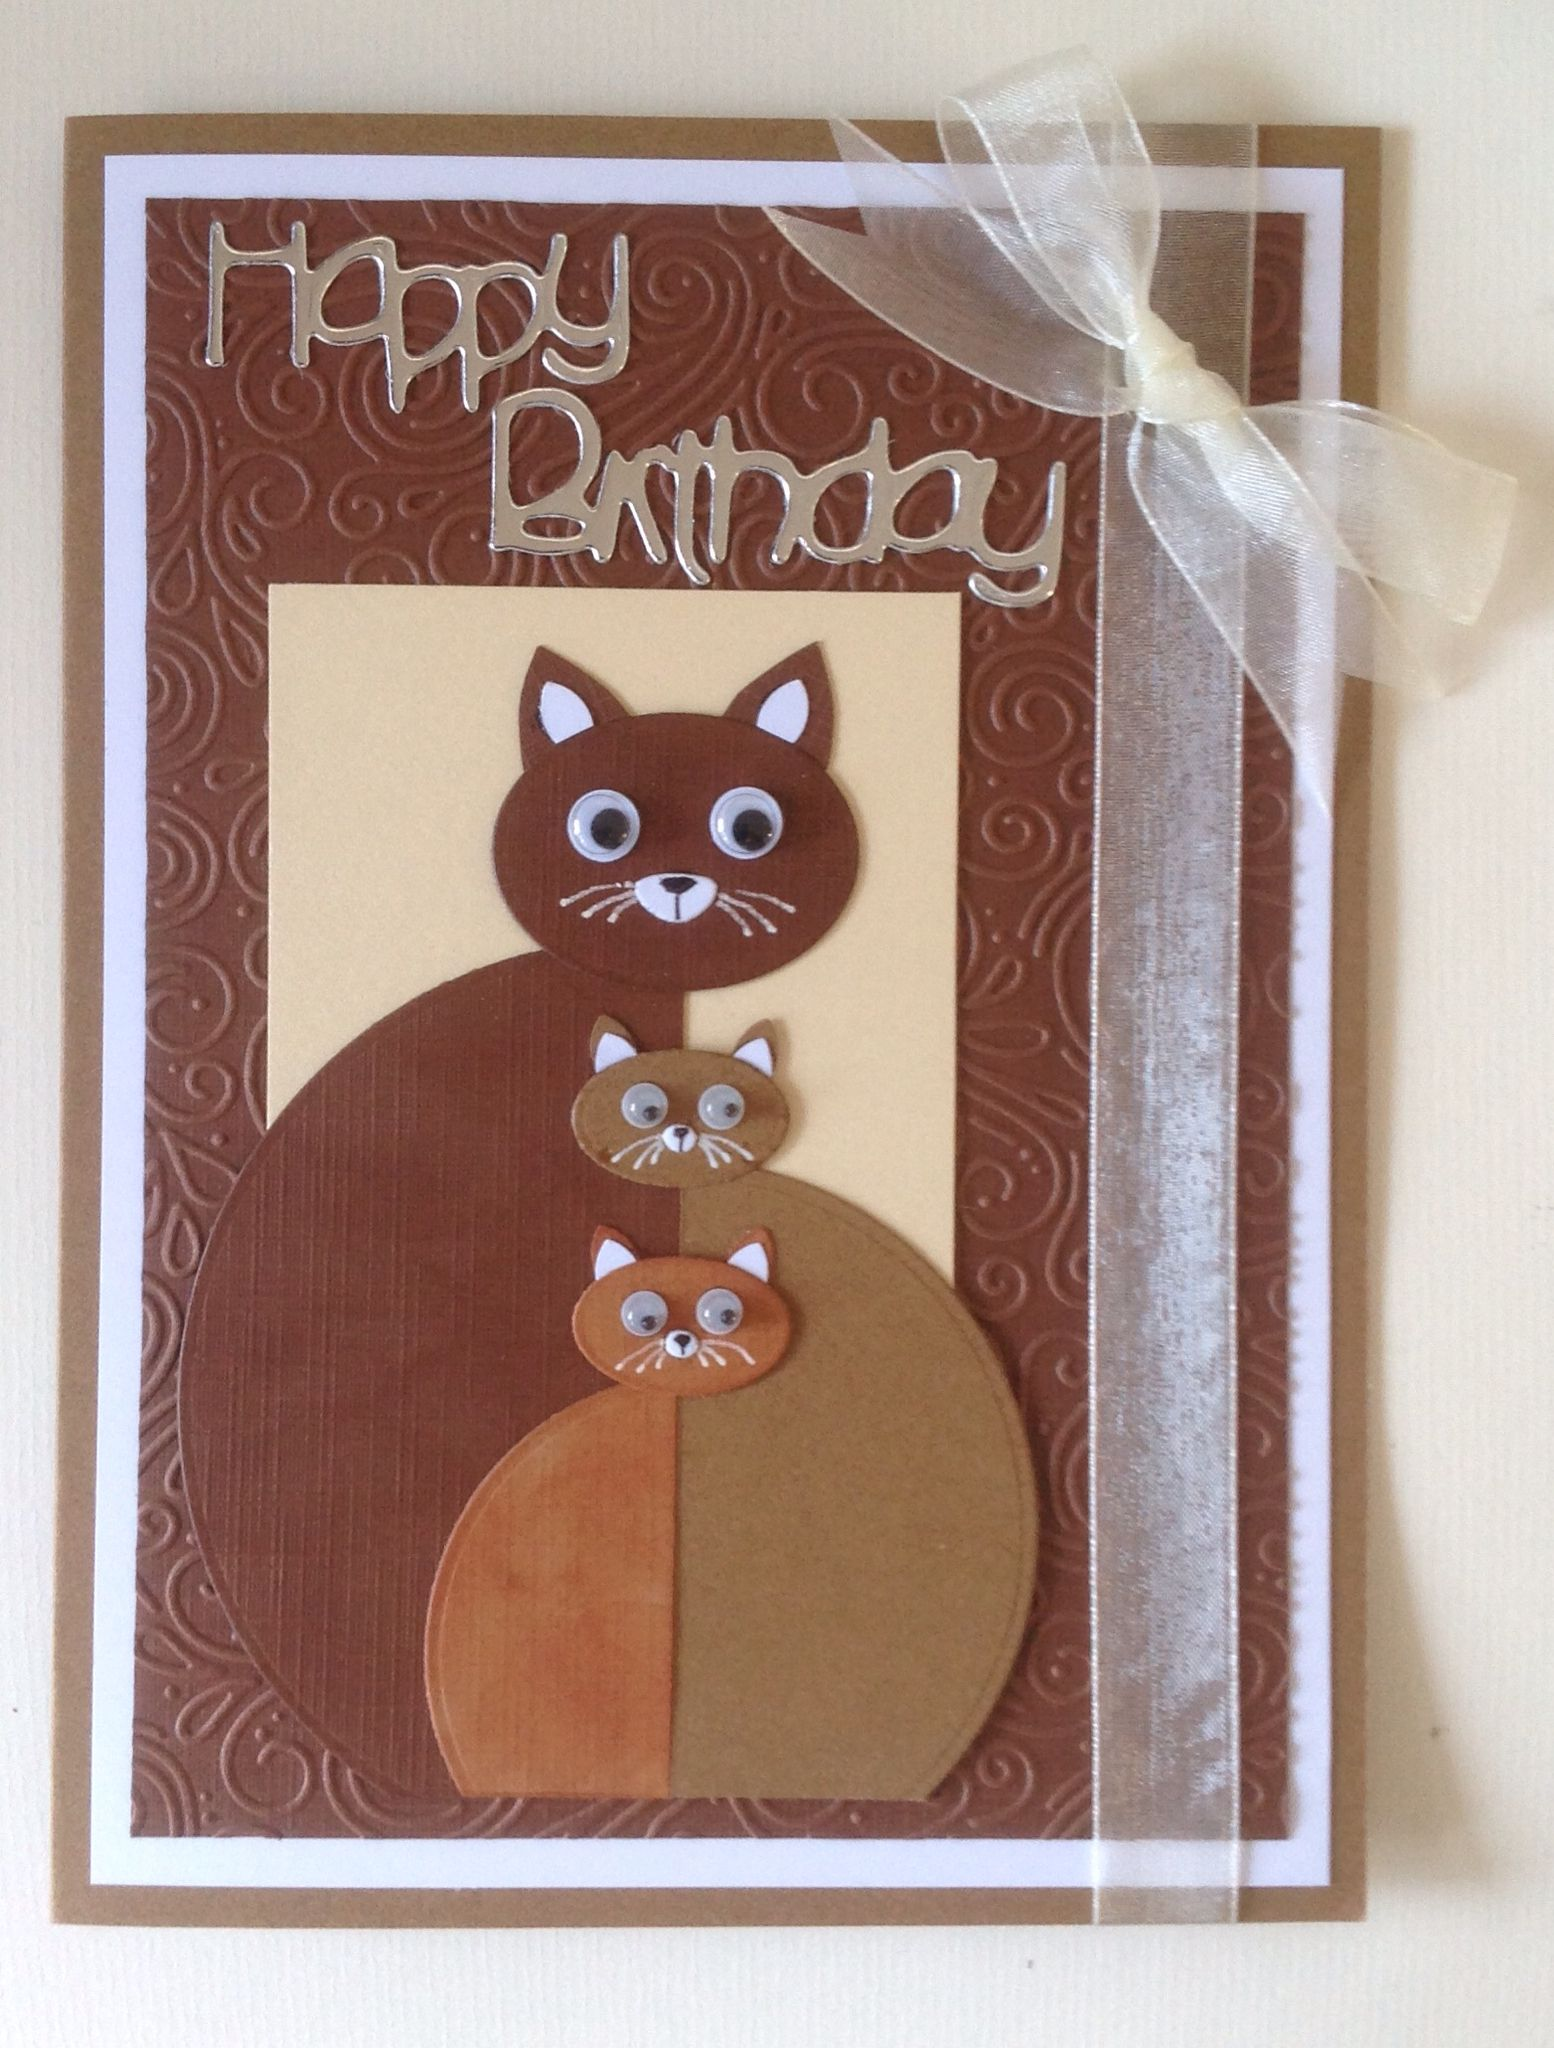 Adapted from a Michelle Zindhof design and made for my daughter who loves her cats, using circle and oval dies, white pen and googly eyes.